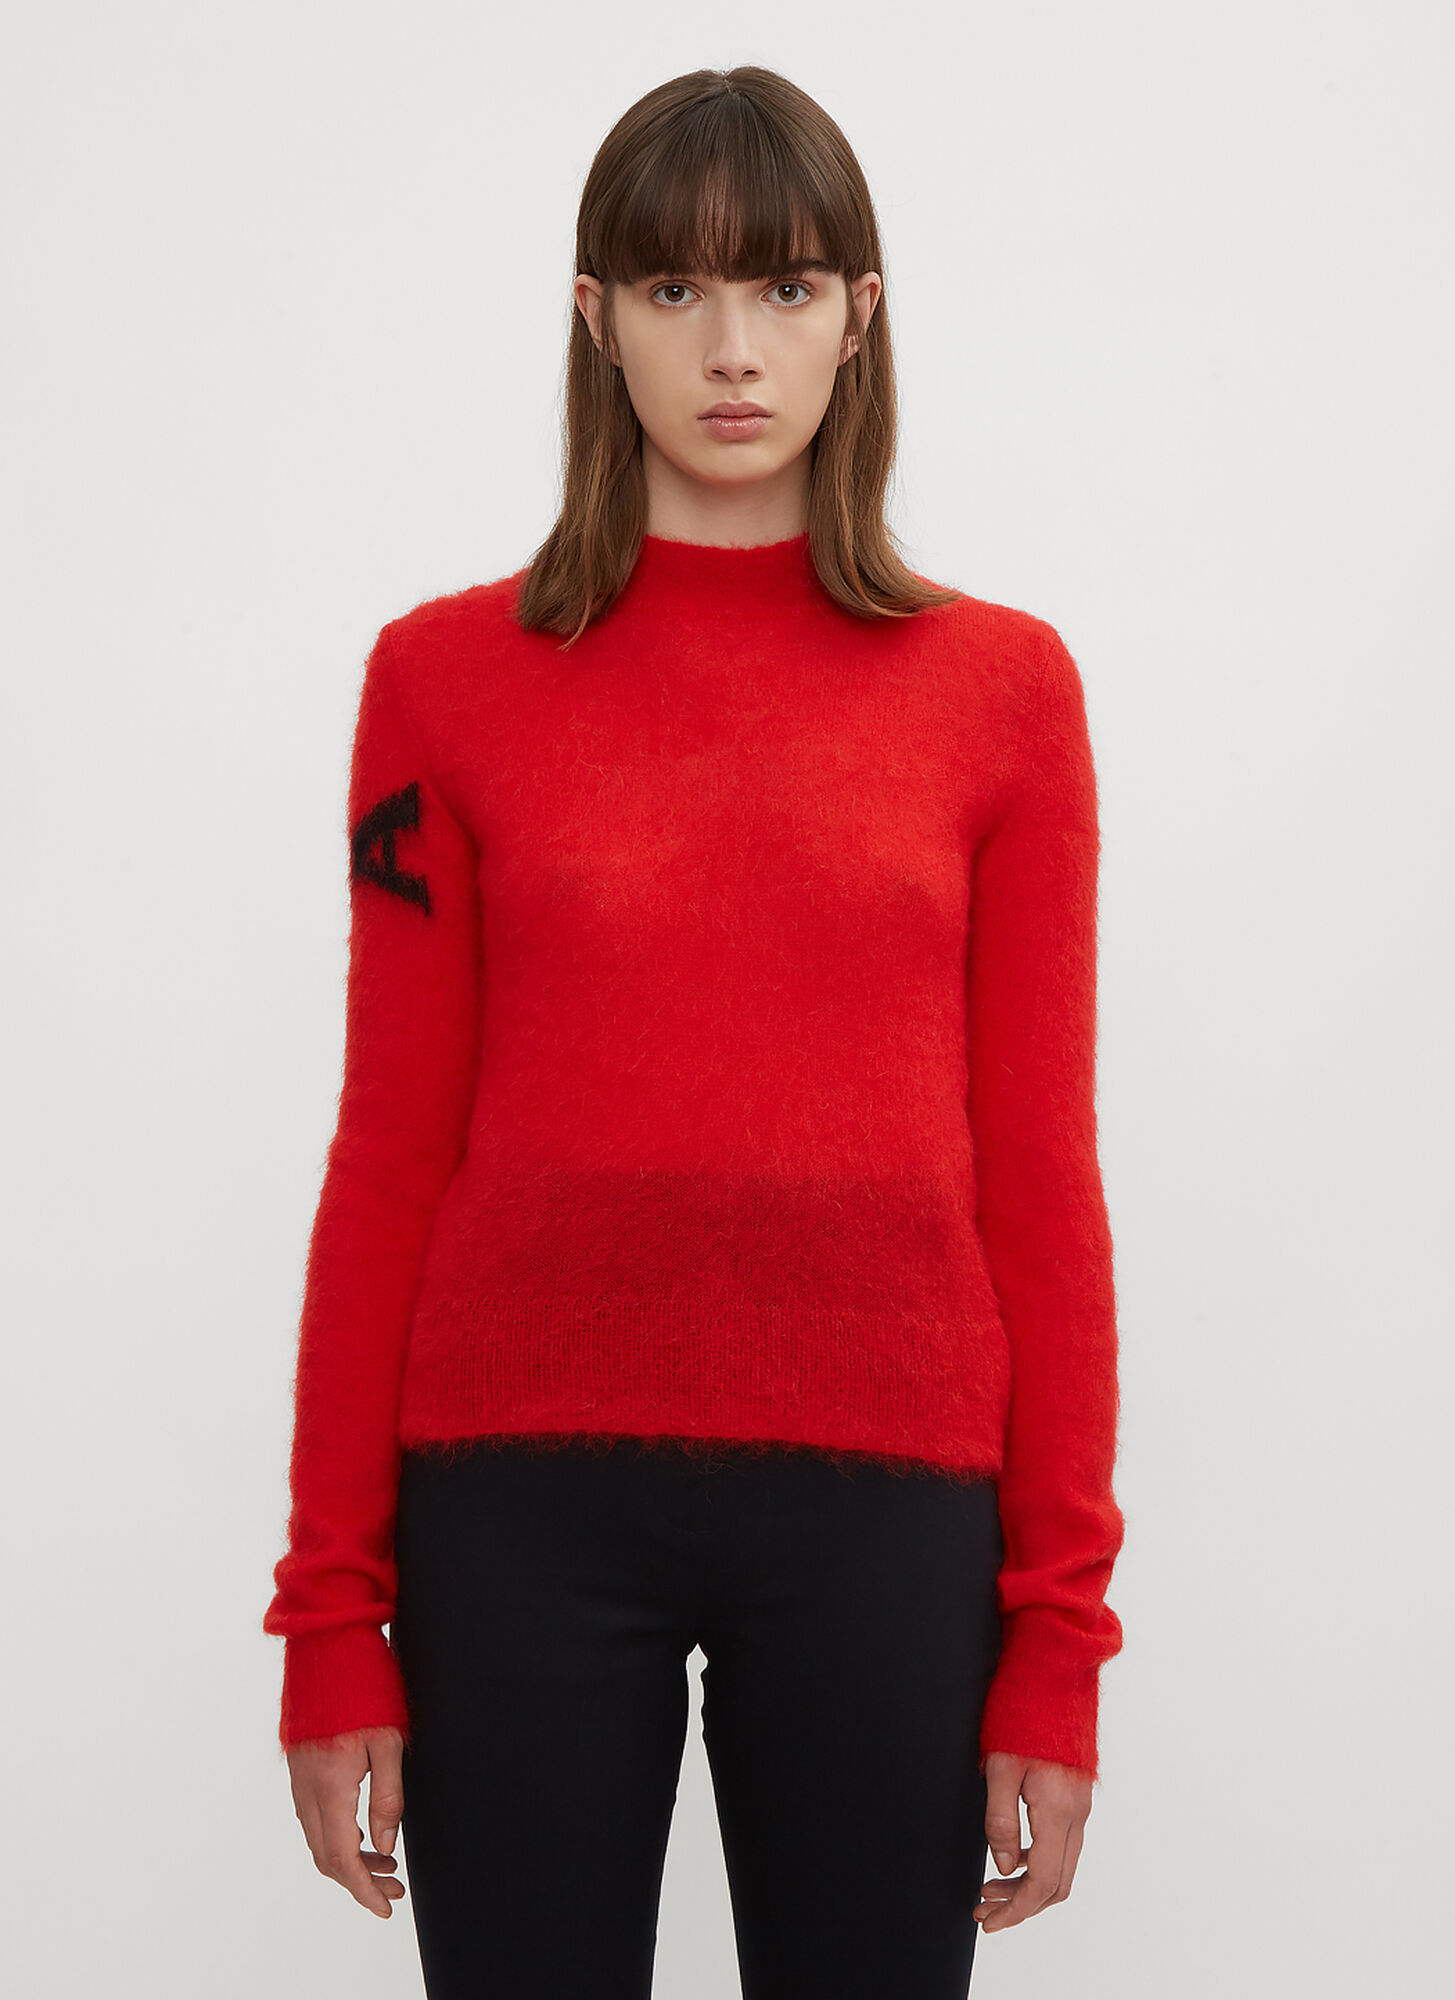 1017 ALYX 9SM Judy Mohair Sweater in Red size M